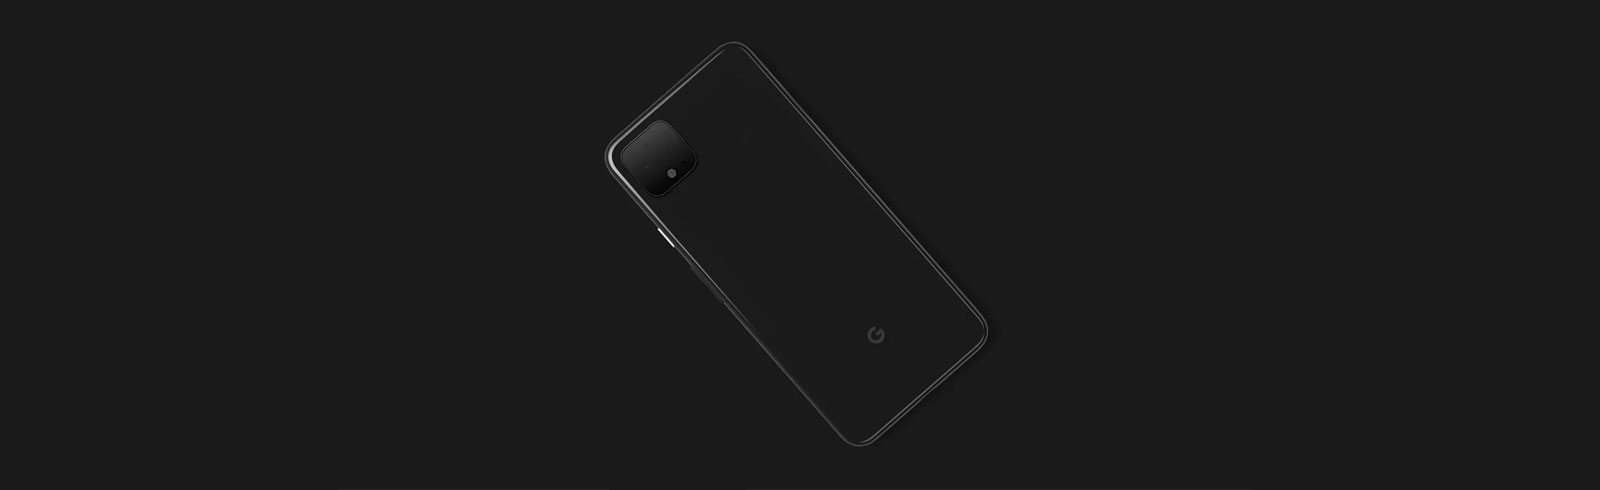 Google Pixel 4 and Pixel 4 XL will have 90Hz displays and 12MP+16MP rear